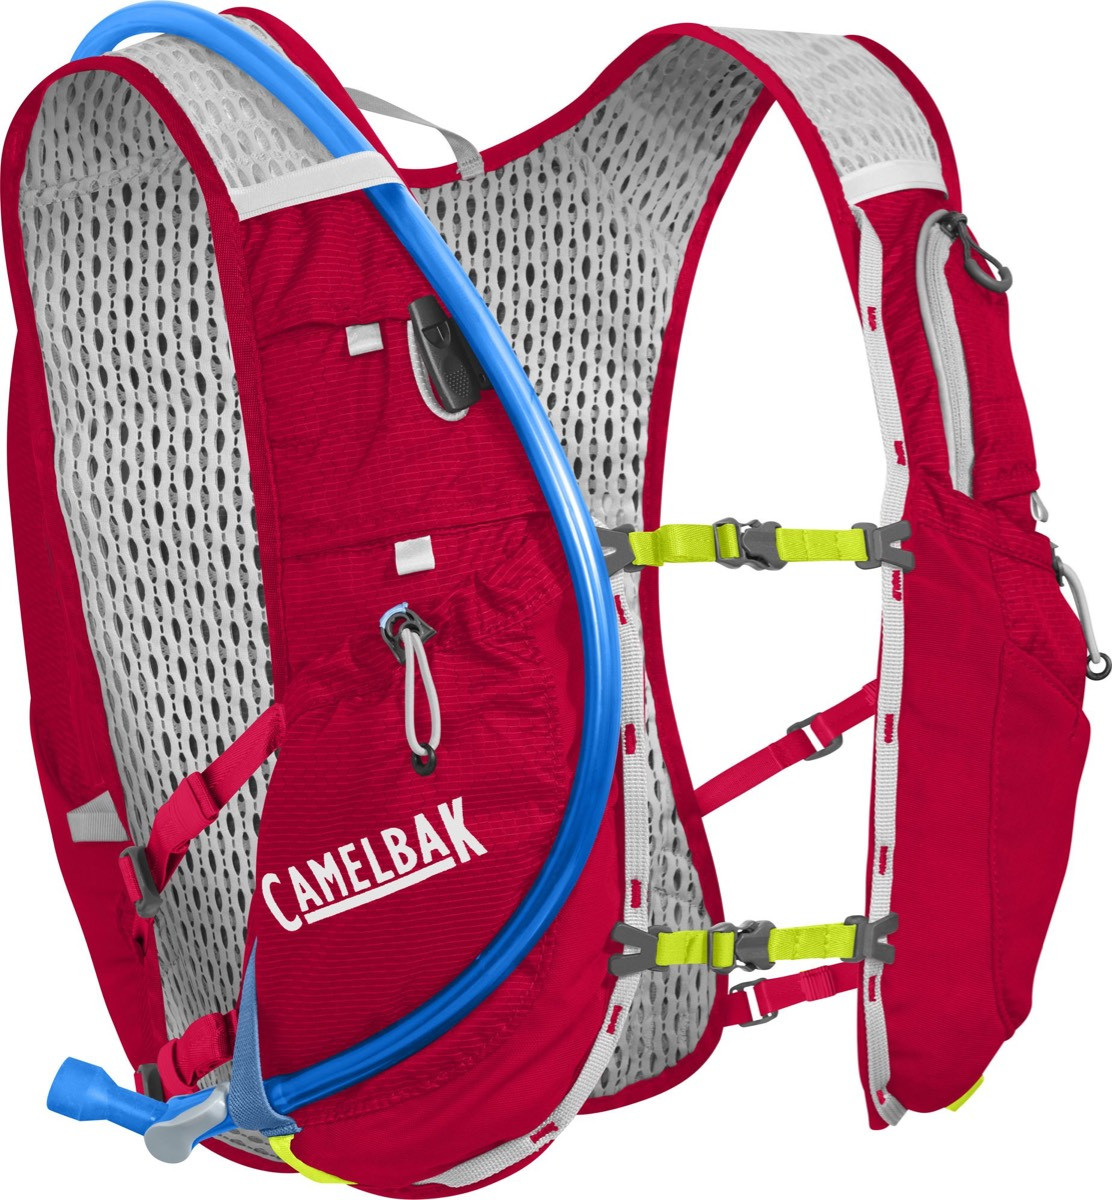 Camelbak Drikkevest Ultra 10vest Crimson Red/Lime Pun 70 oz